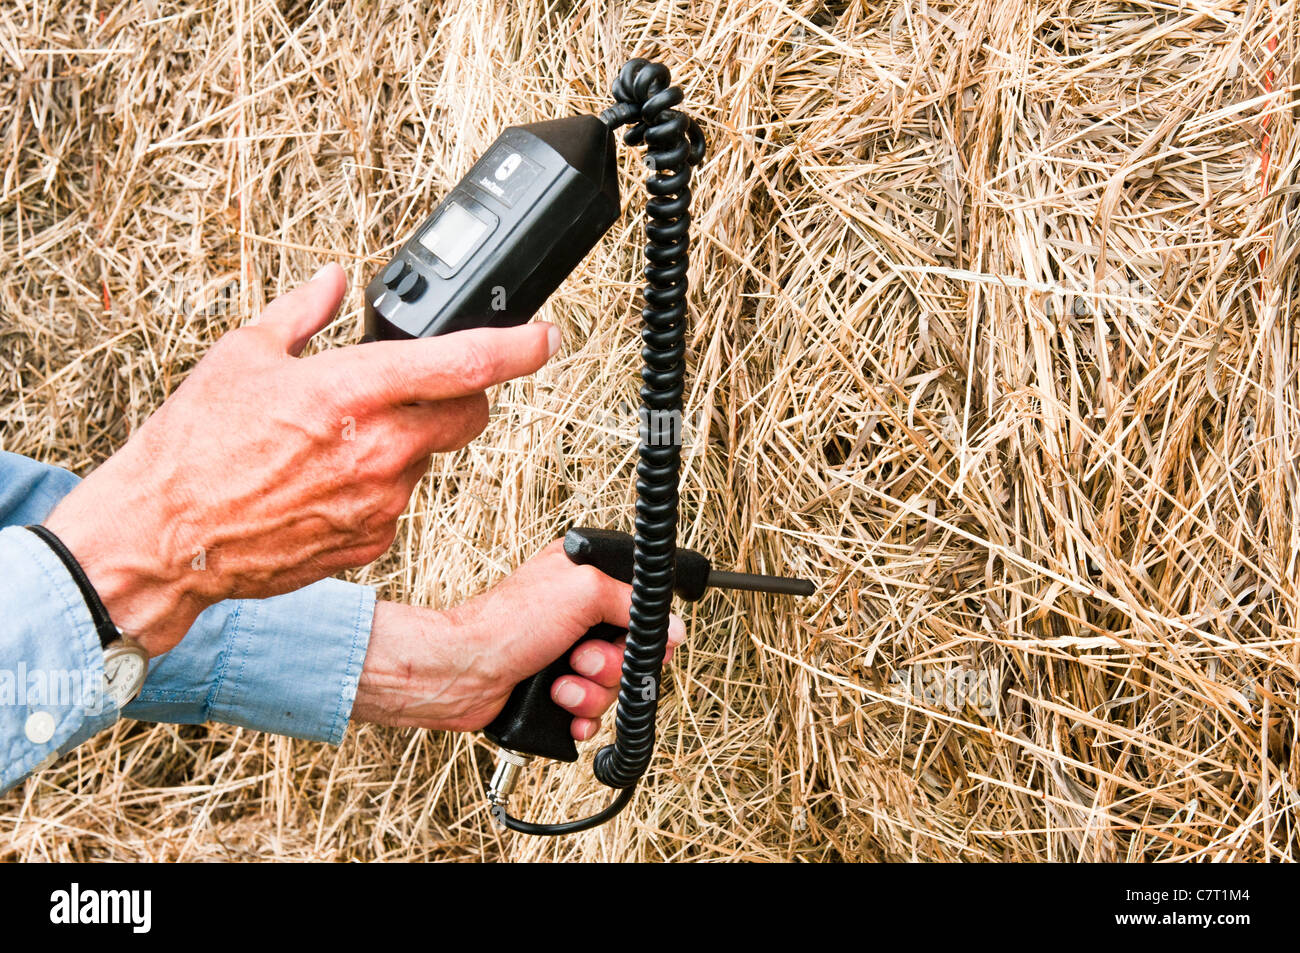 A farmer uses an instrument to test an alfalfa bale for moisture content and temperature. - Stock Image